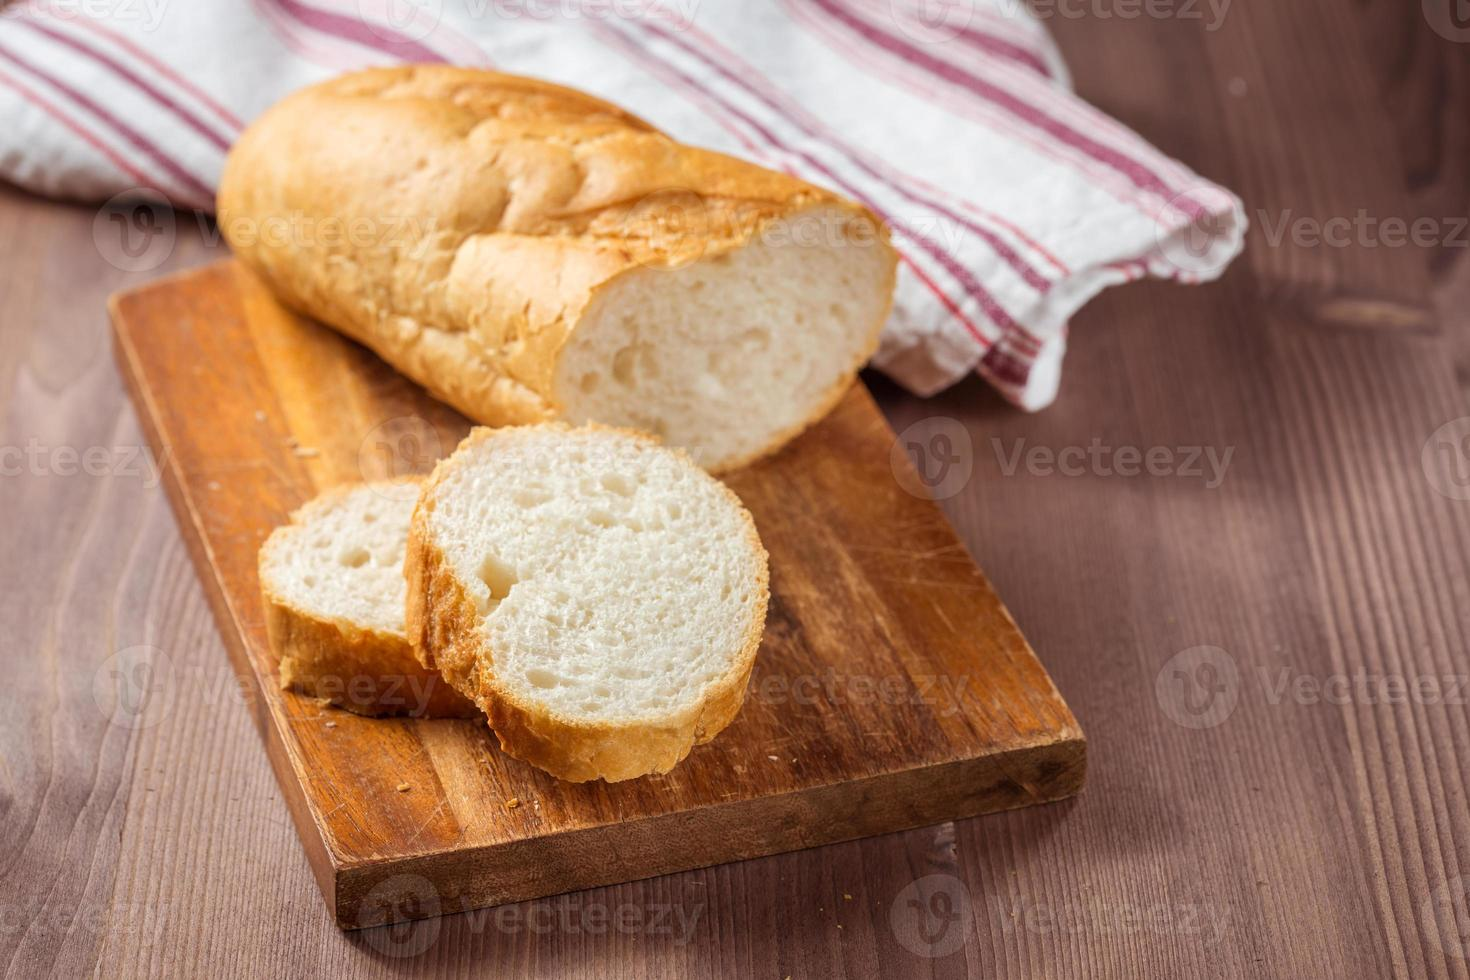 sliced bread on wooden table photo